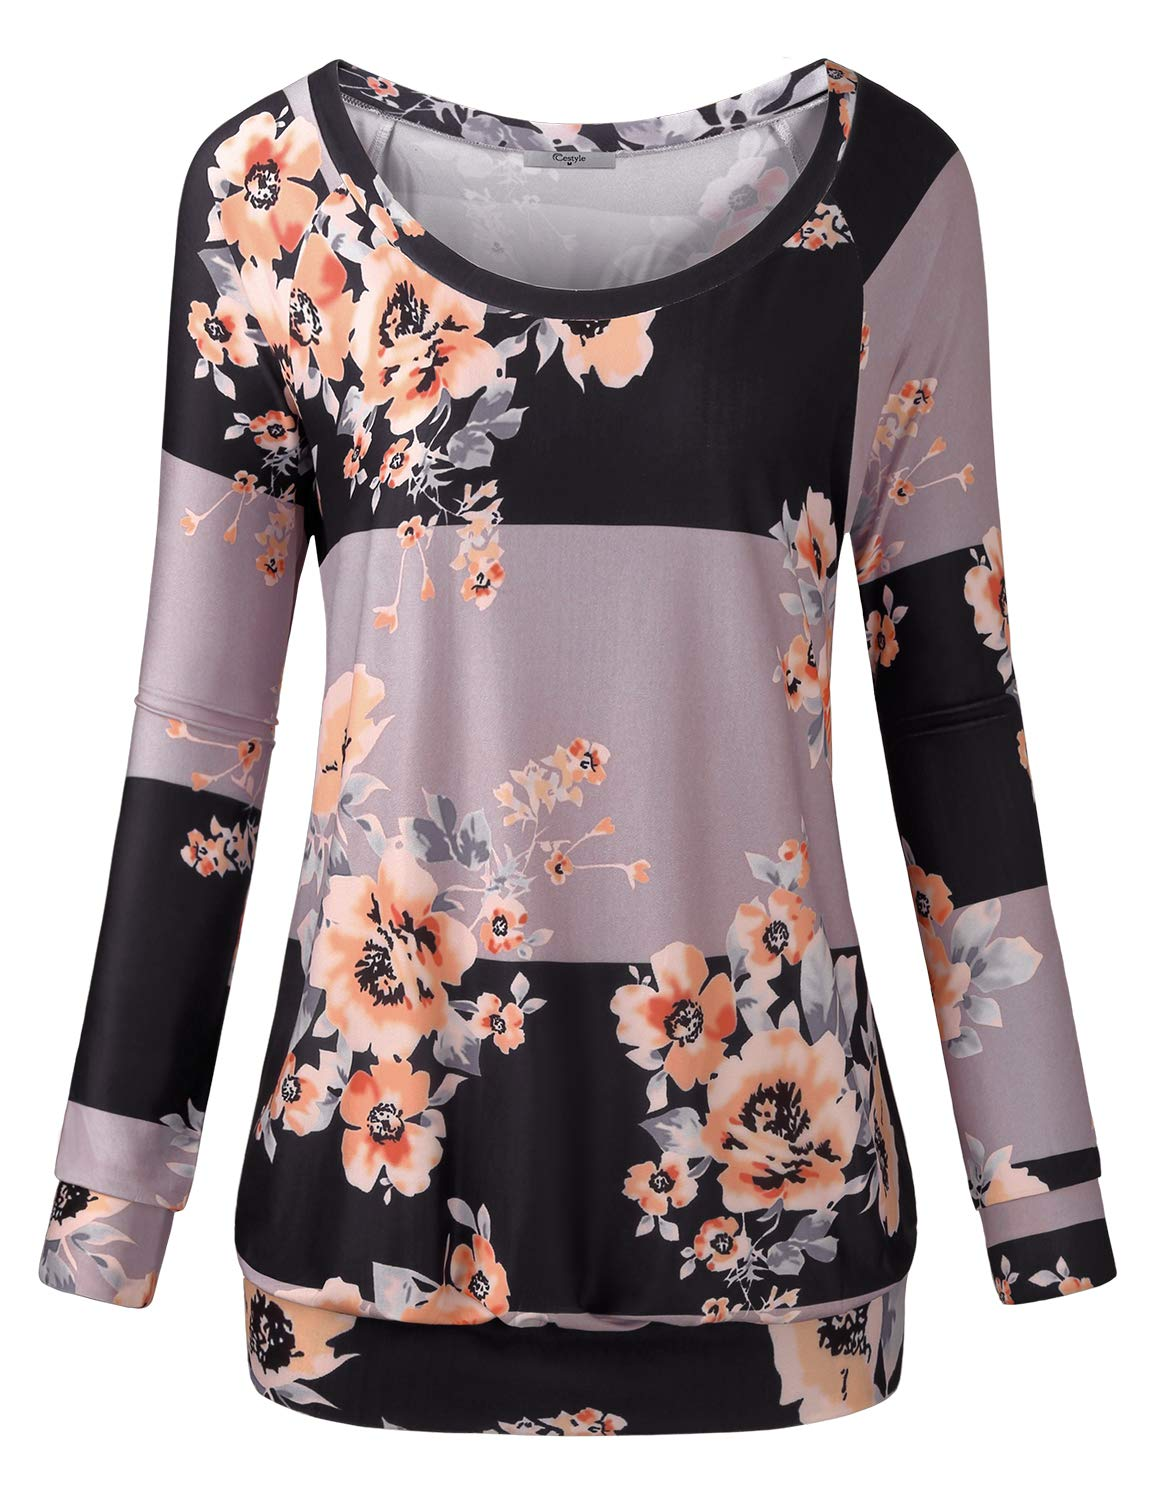 Cestyle Printed Sweatshirt,Womens Full Sleeve Boat Neck Floral Pattern Striped Tunic Sweater for Leggings Juniors Asymmetry Color Block Banded Bottom Sweatshirts Grey X-Large